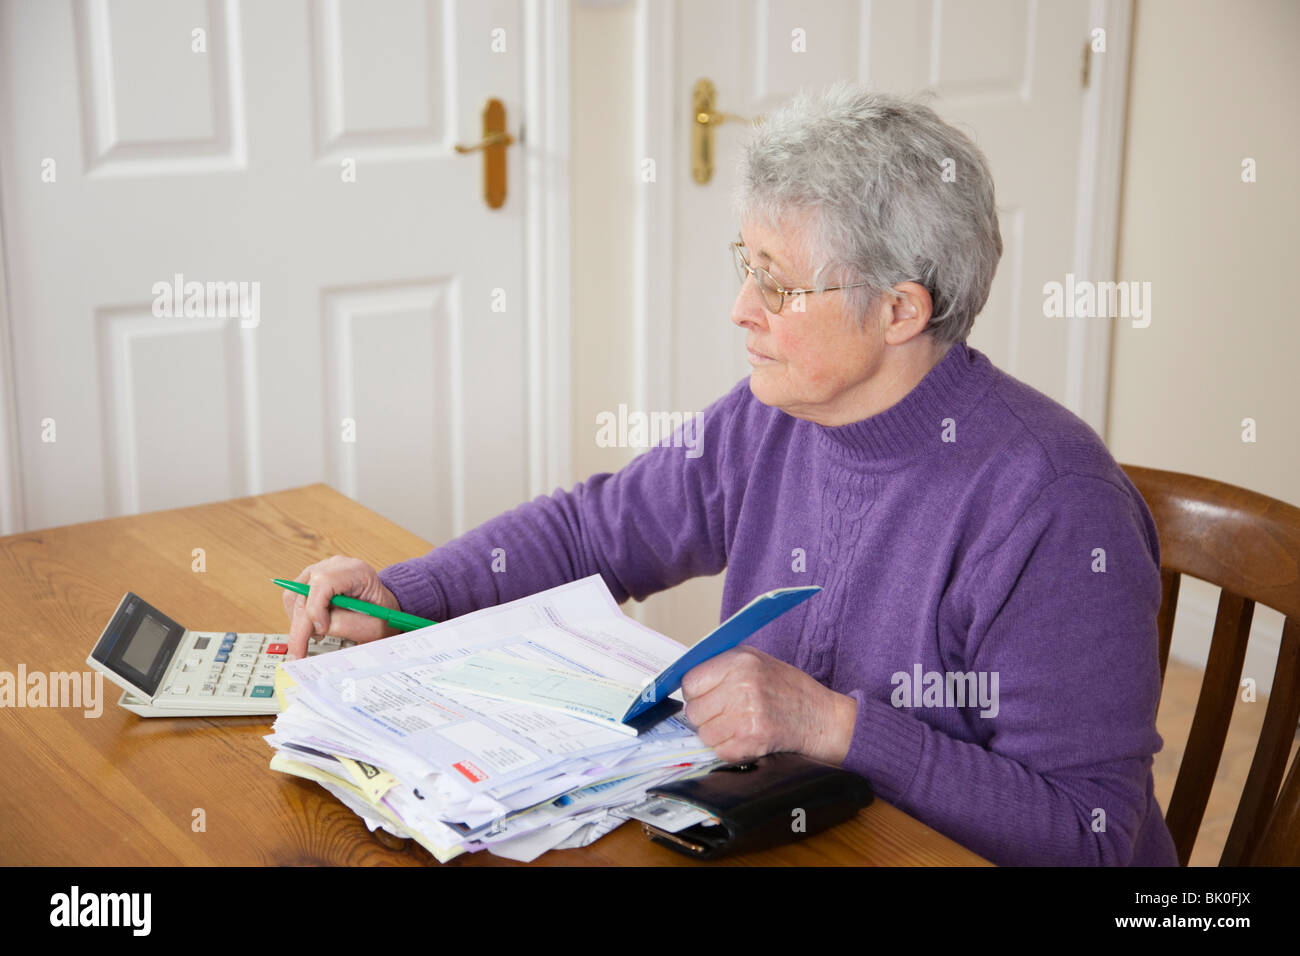 Independent senior woman pensioner with big pile of bills on table using a calculator before writing cheque to pay - Stock Image